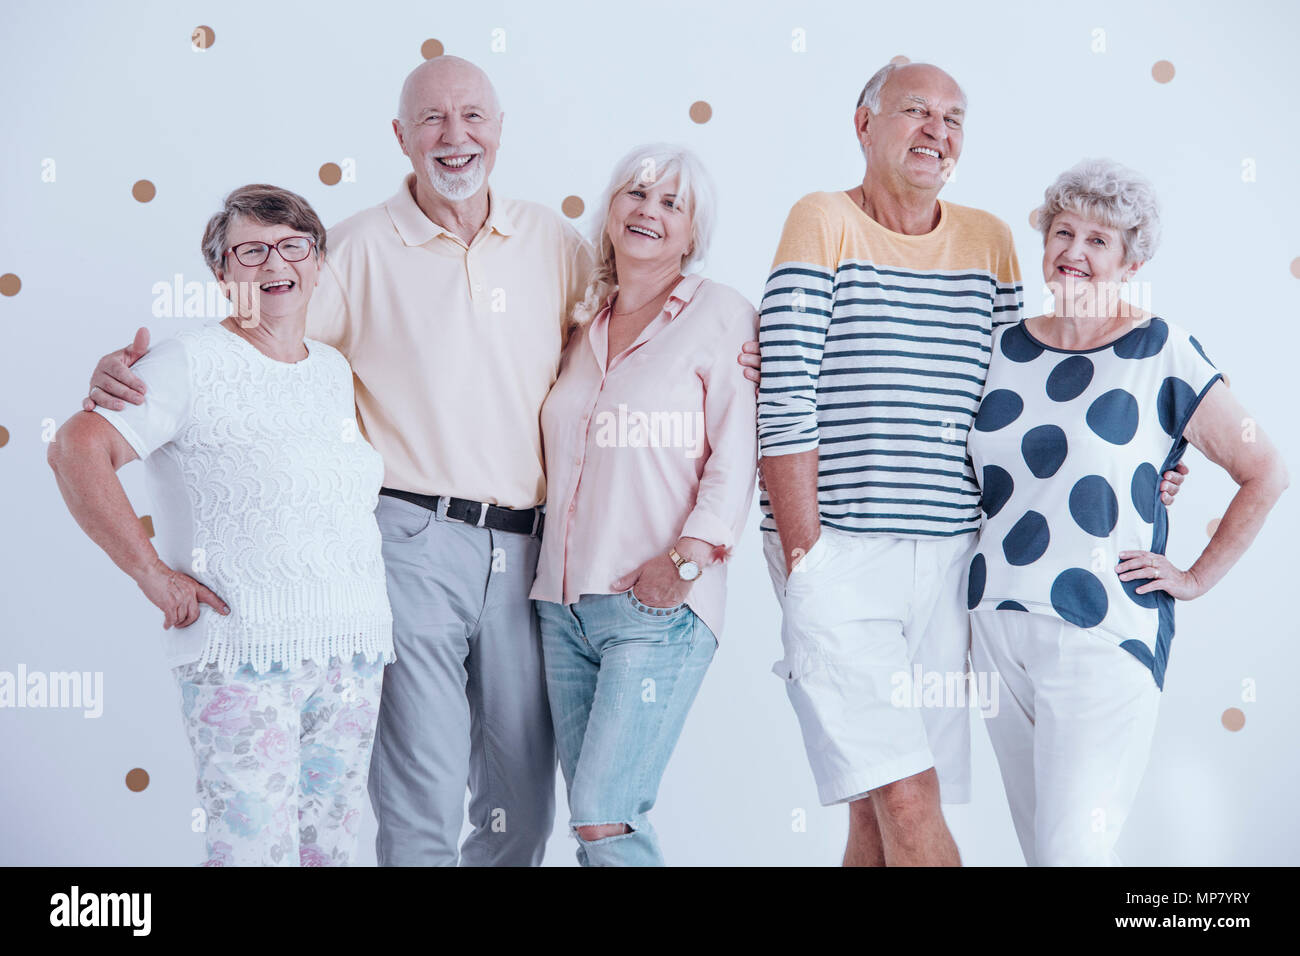 Smiling senior people enjoying birthday party against white wall with gold dots - Stock Image